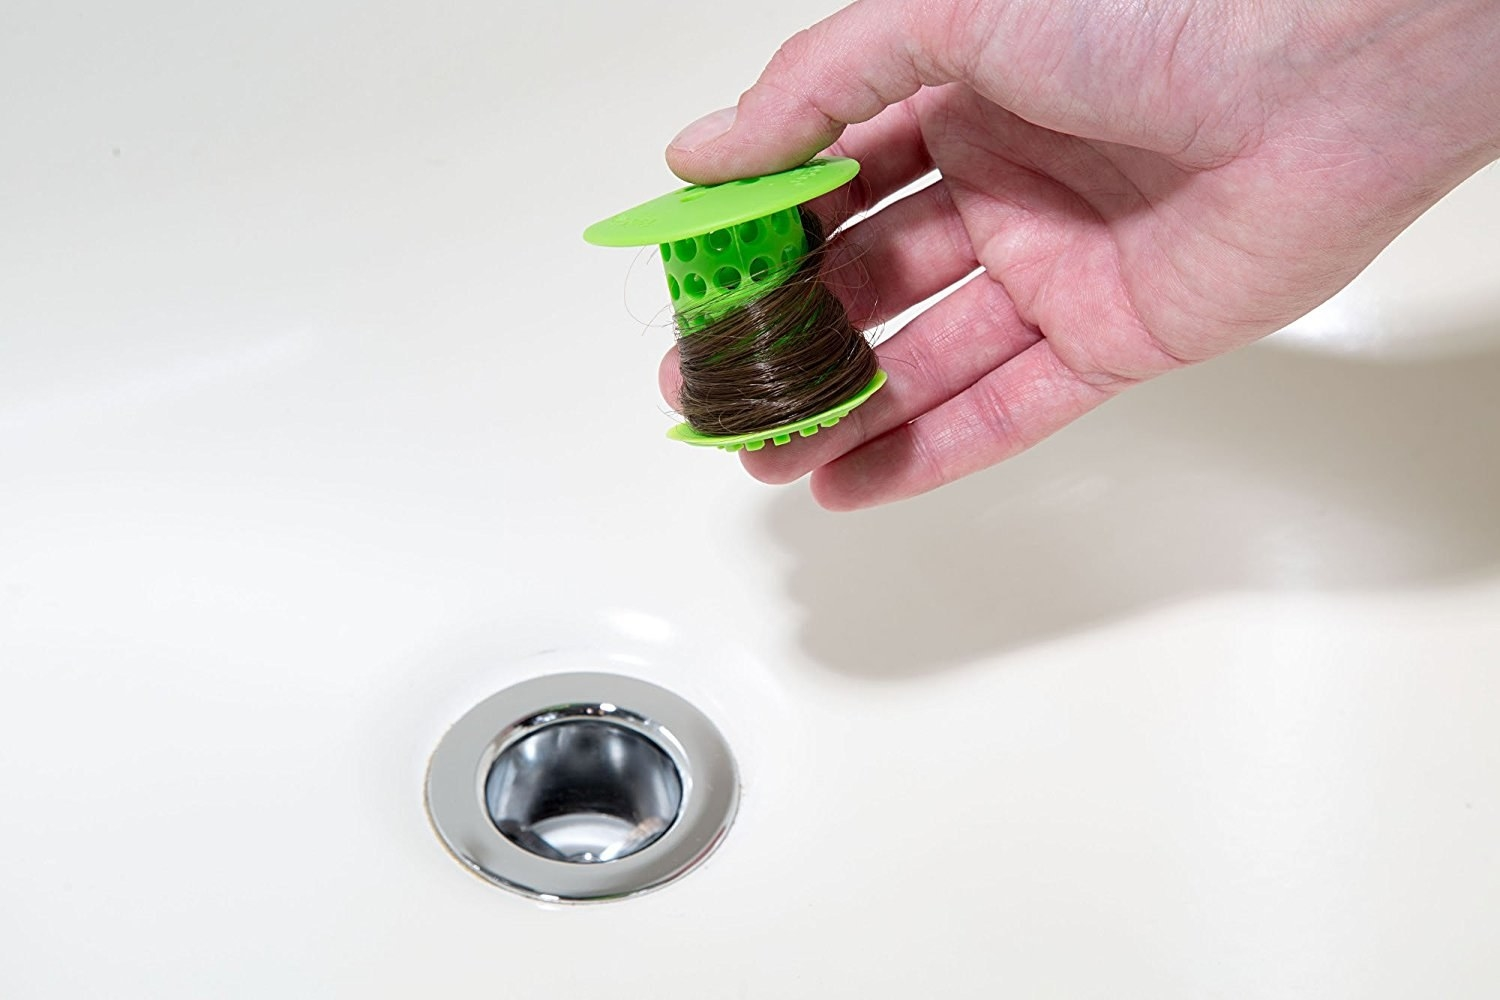 The Tubshroom in green being removed from a drain